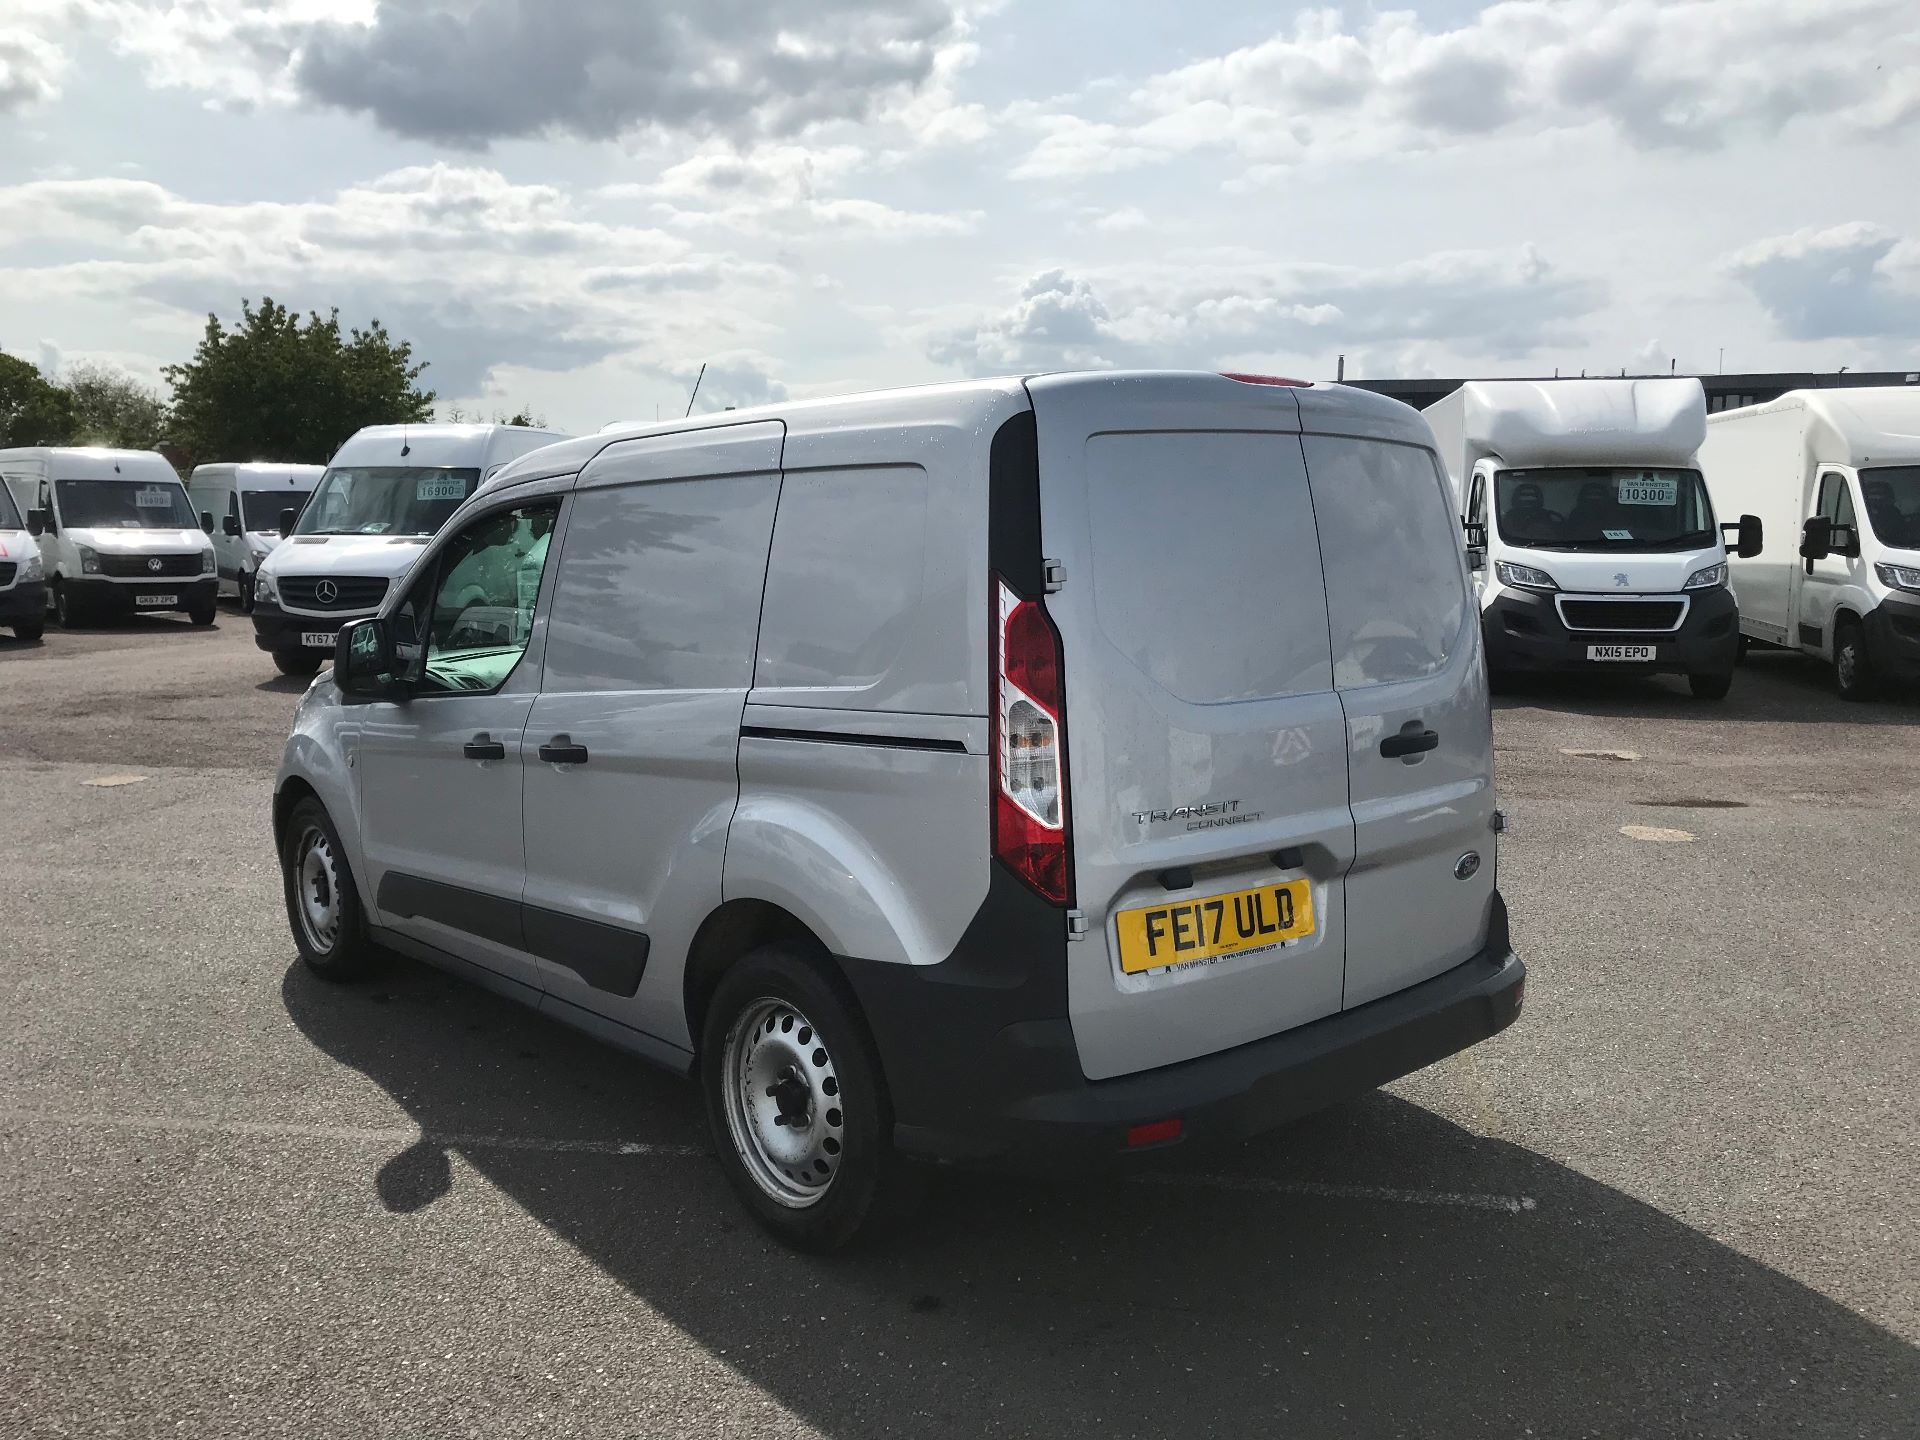 2017 Ford Transit Connect   220 L1 1.5 TDCI 75PS EURO 6 (FE17ULD) Image 5